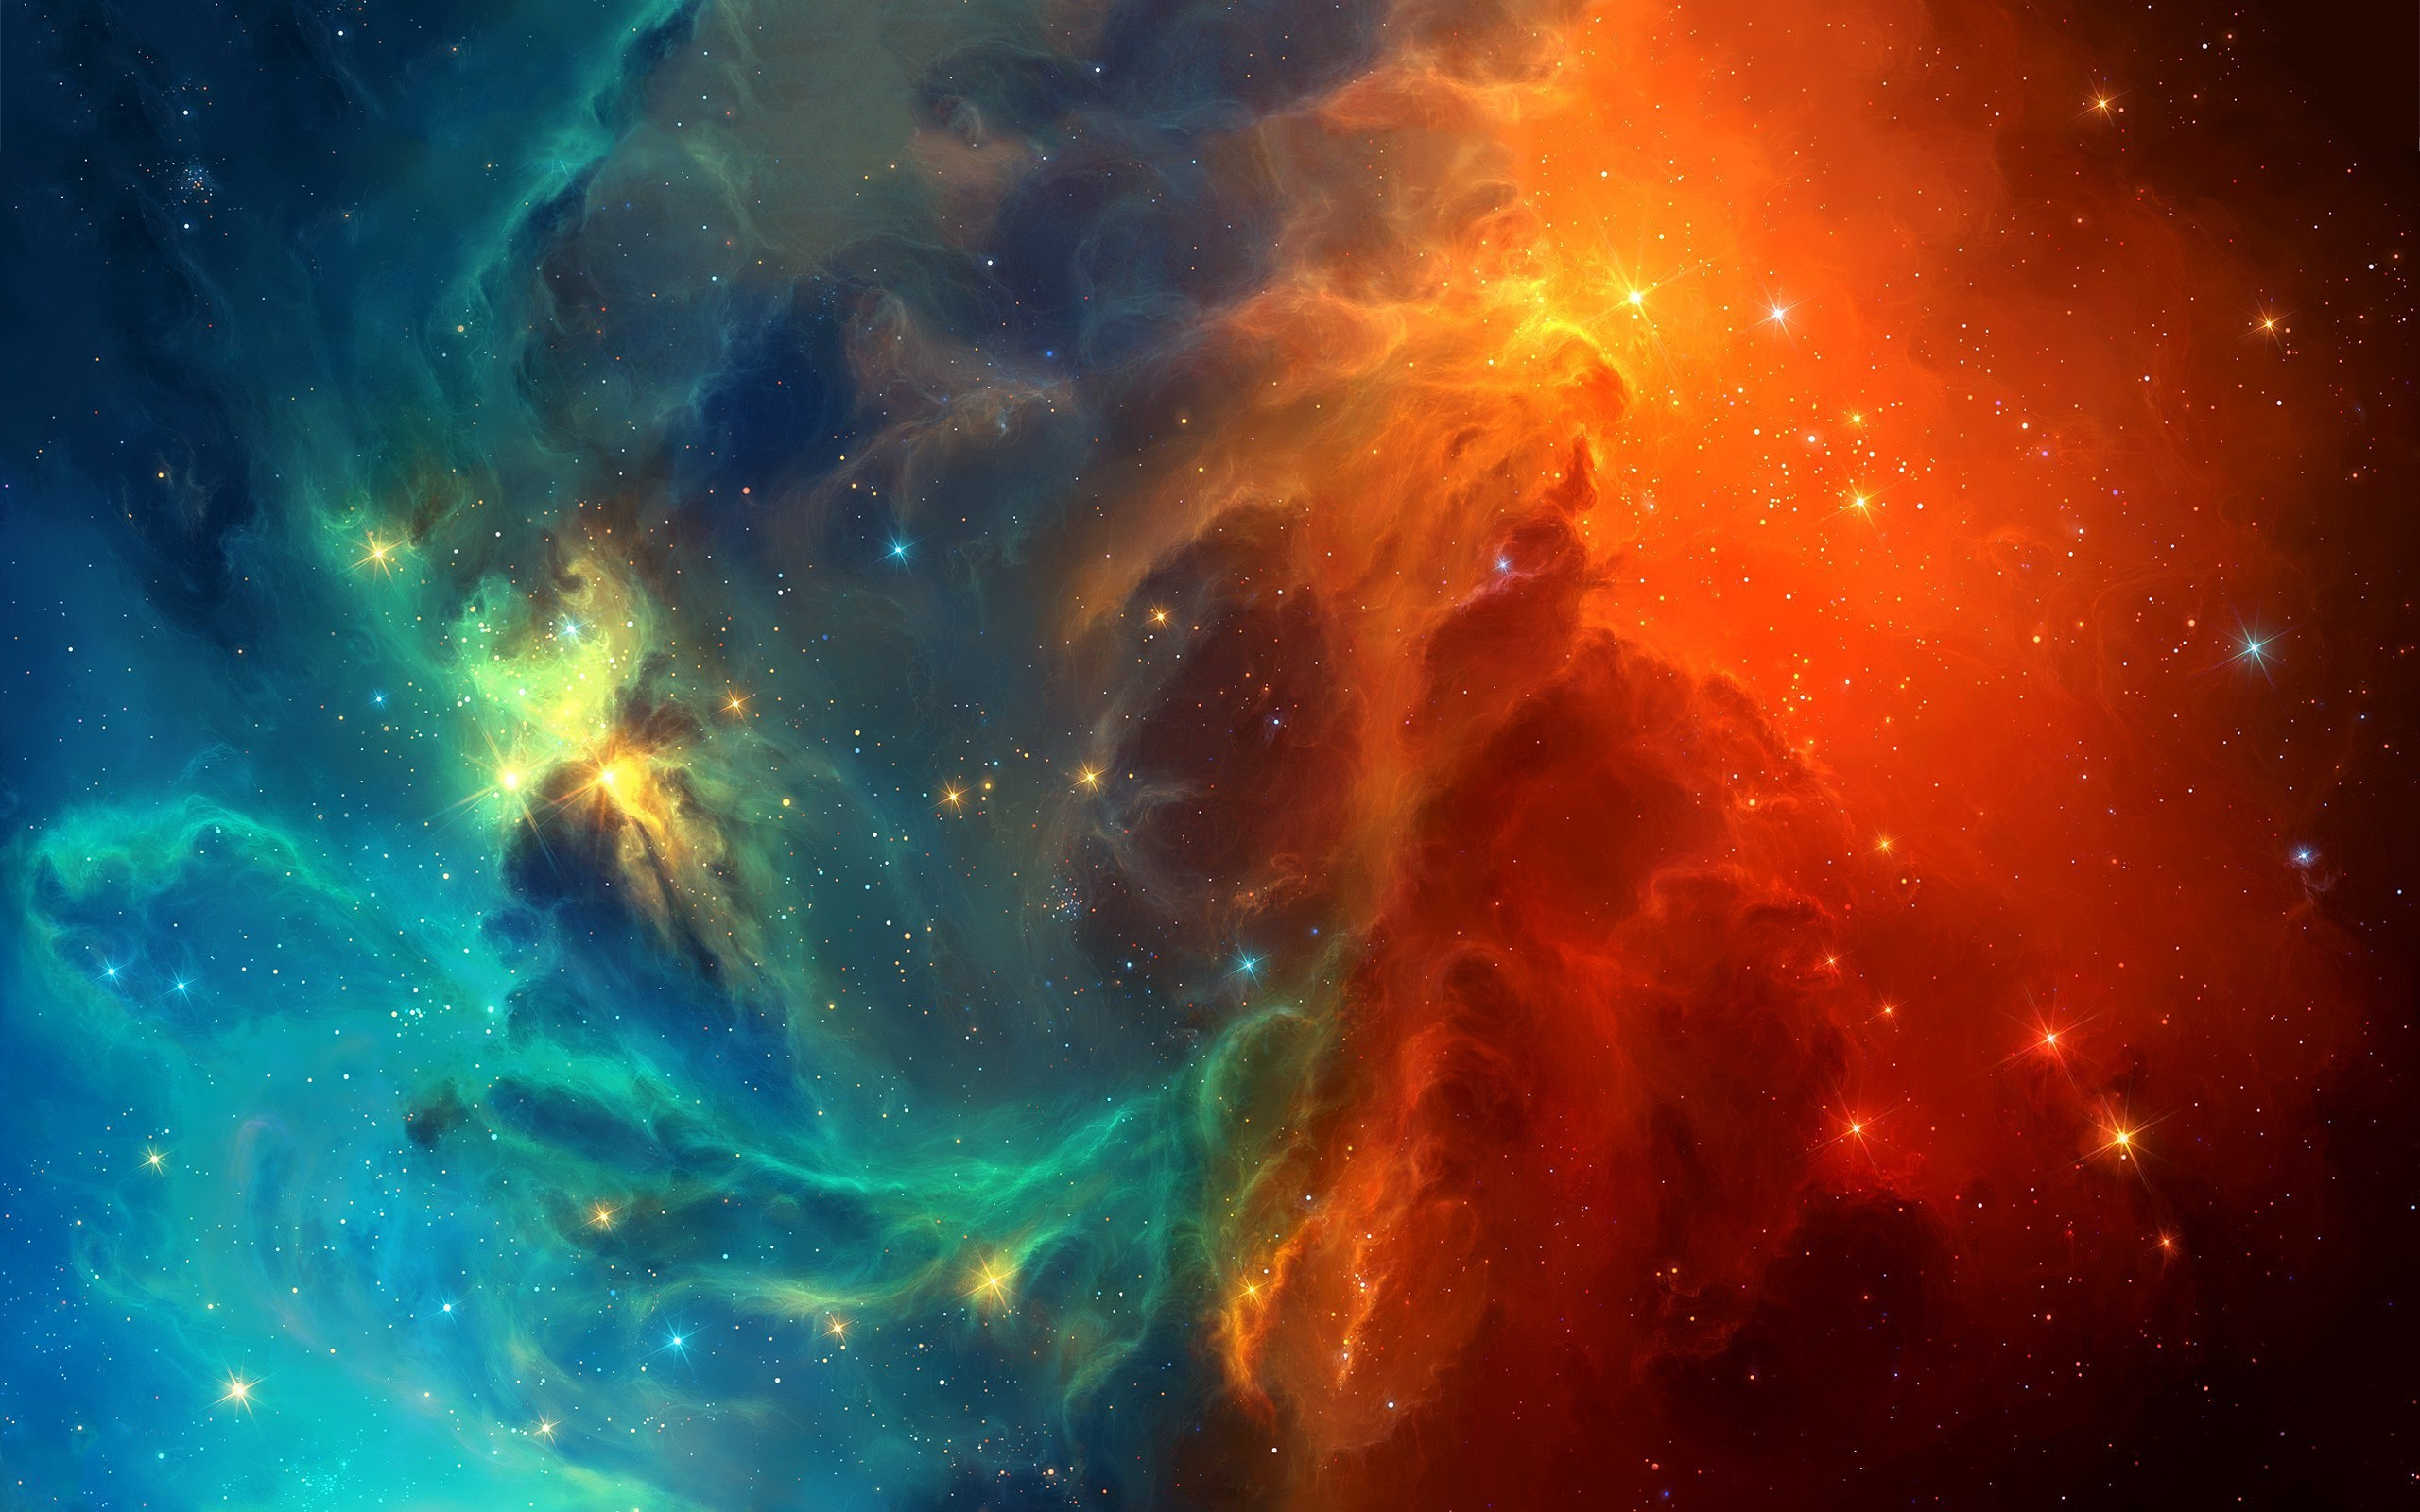 nebula wallpaper ·① download free beautiful full hd wallpapers for